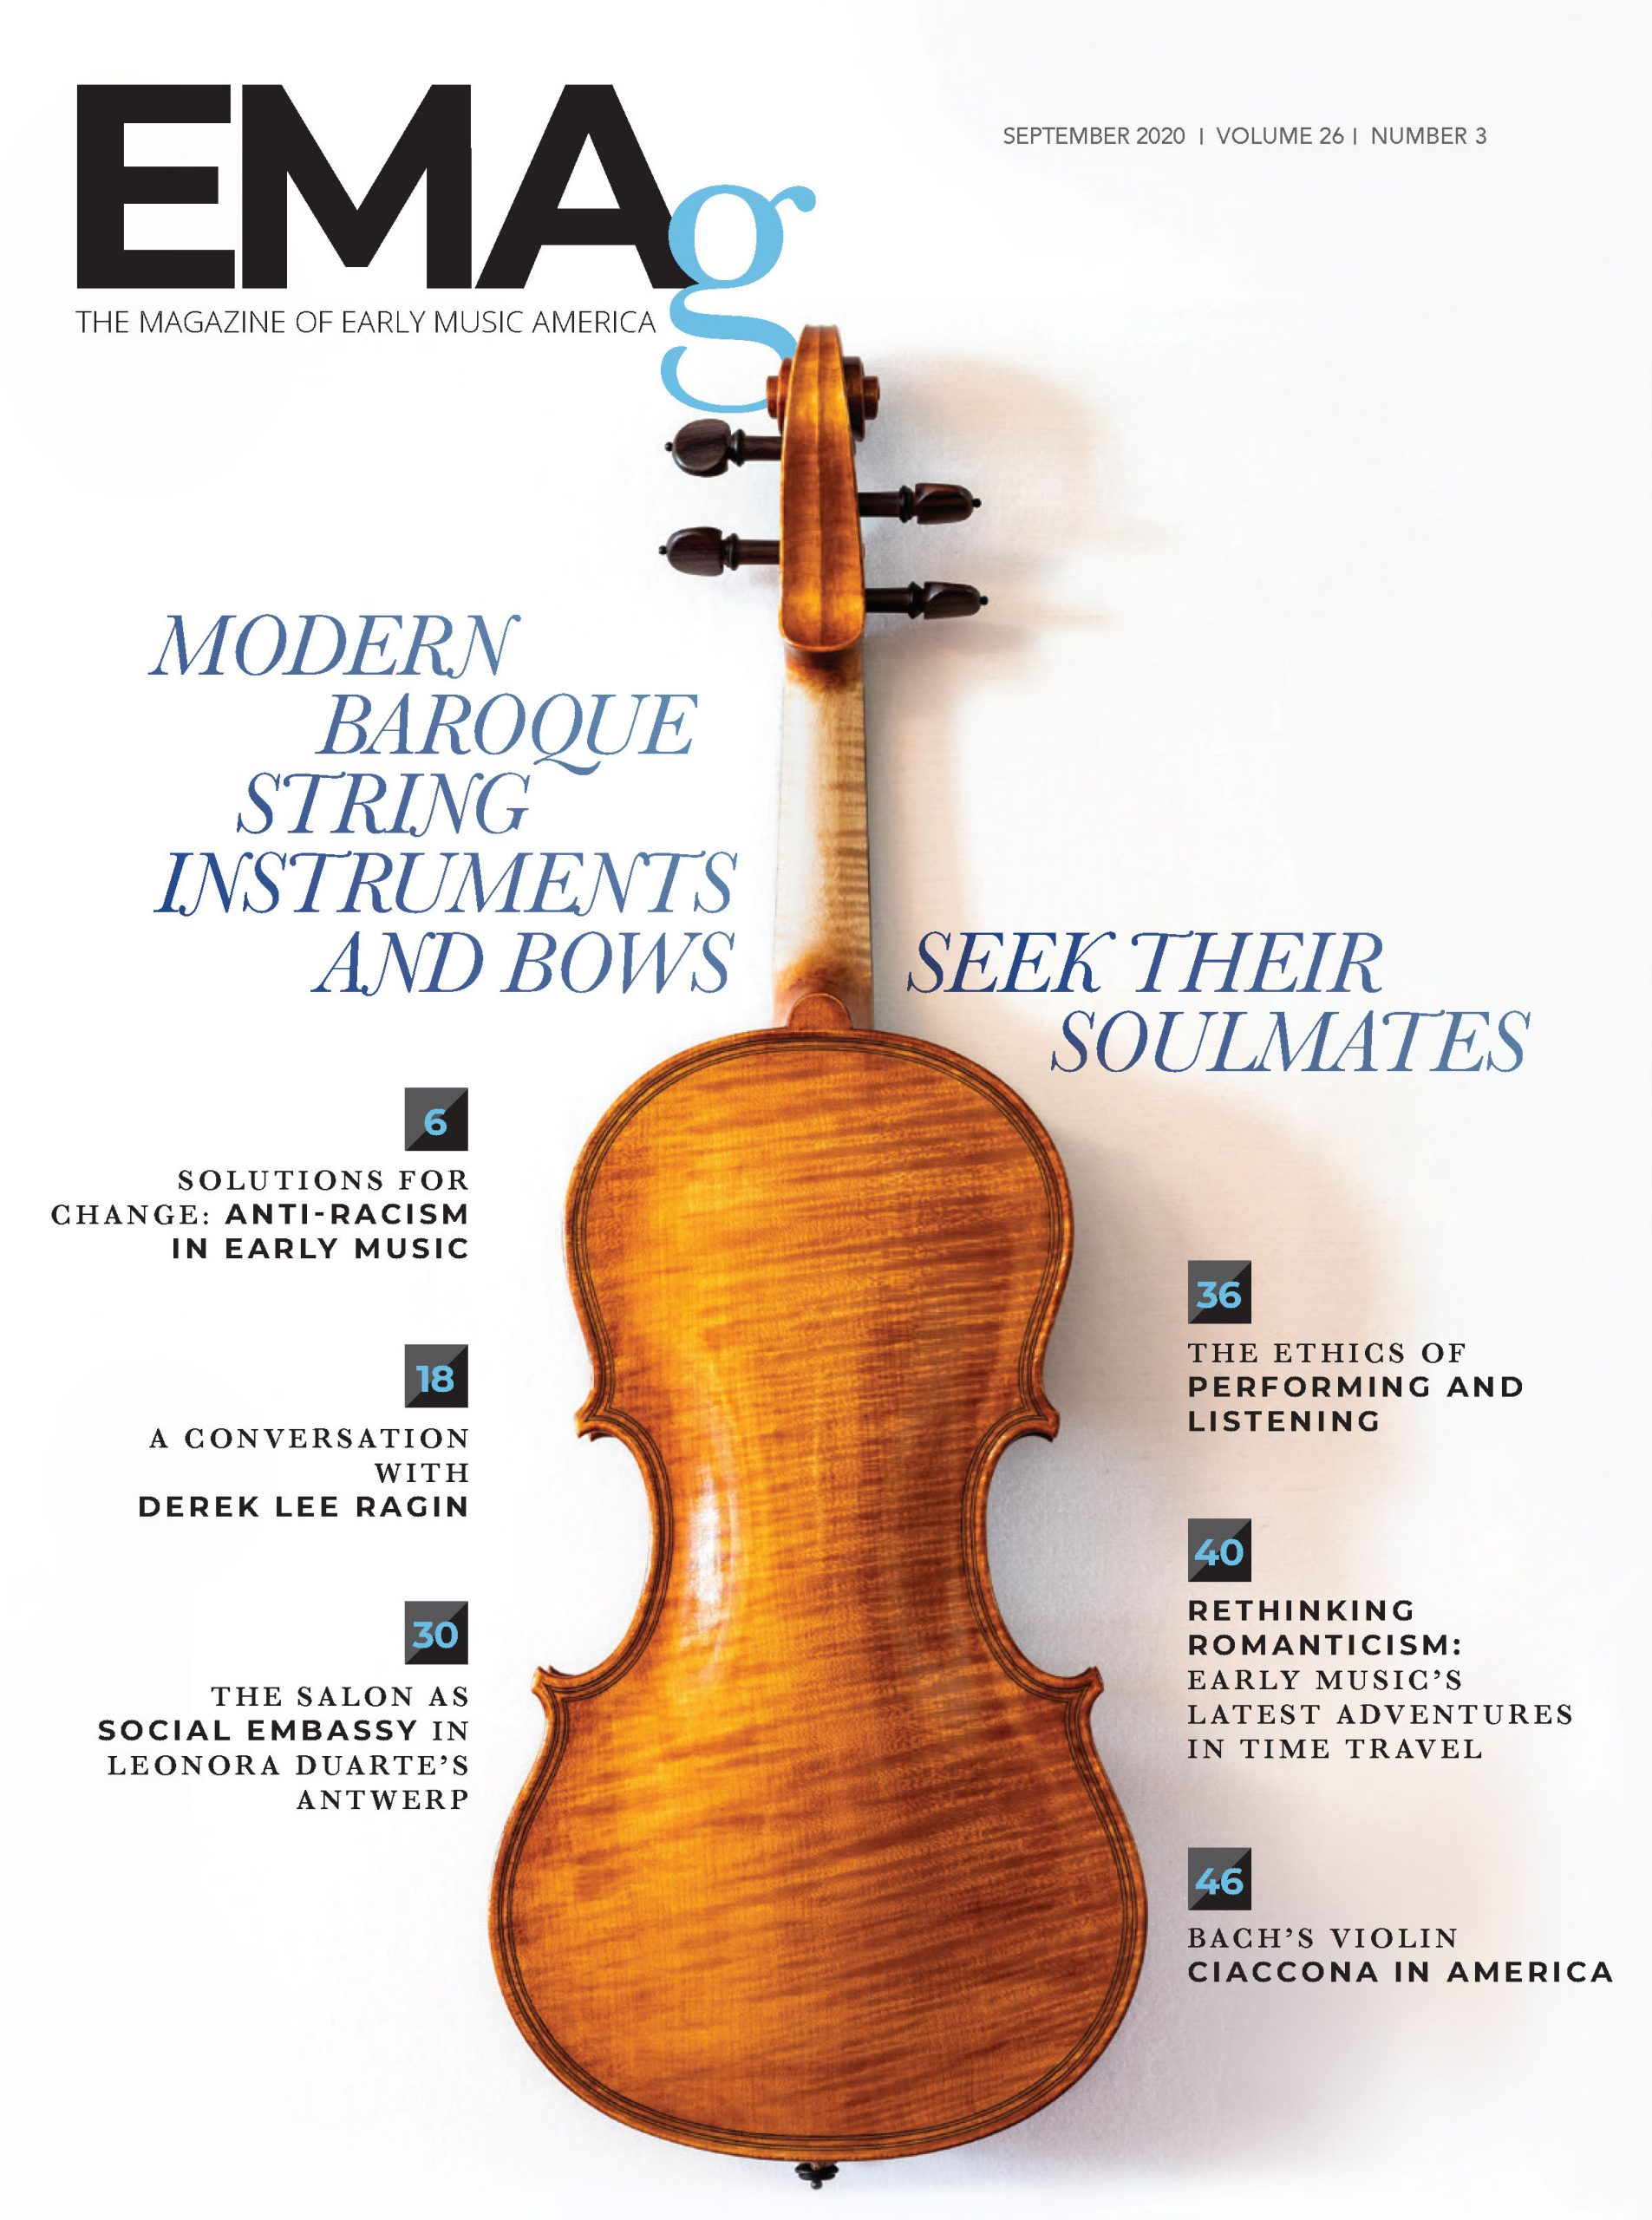 magazine cover with the back of a baroque violin